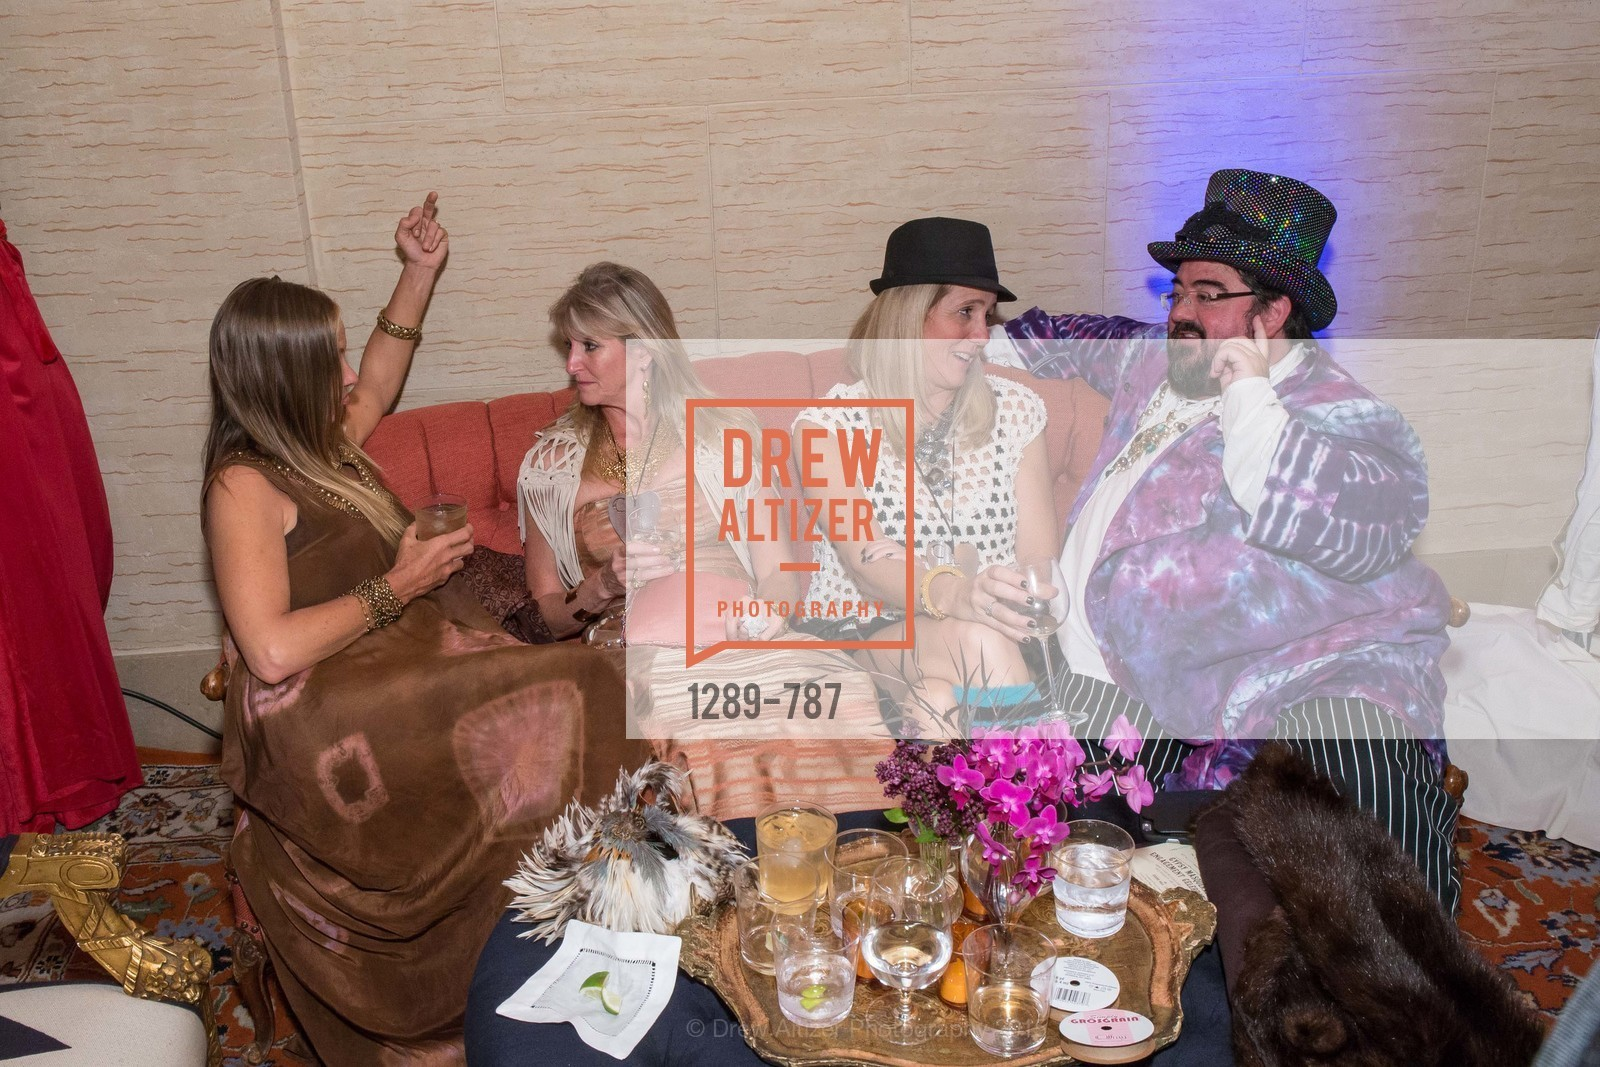 Holly Kopman, Laura Kimpton, David Precheur, Bently Engagement, US, April 14th, 2015,Drew Altizer, Drew Altizer Photography, full-service agency, private events, San Francisco photographer, photographer california